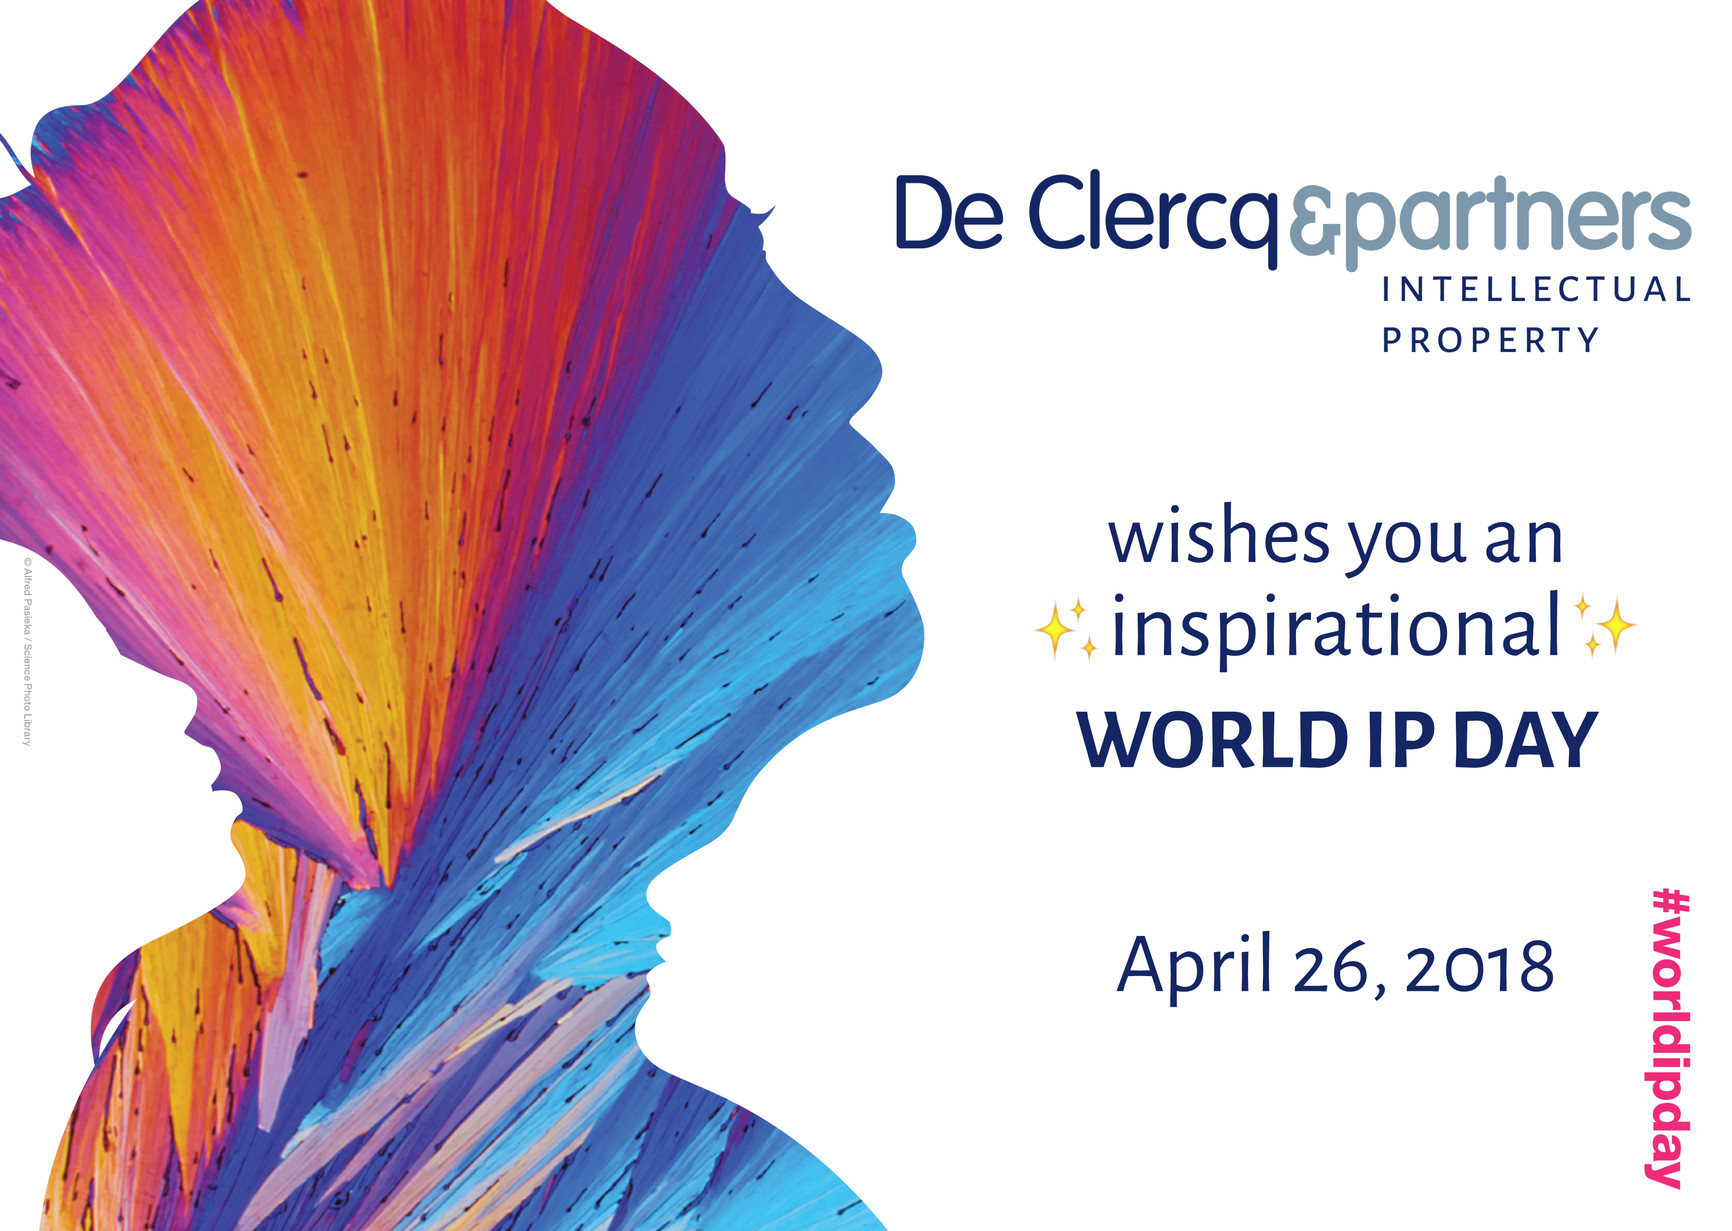 Happy World Intellectual Property Day!